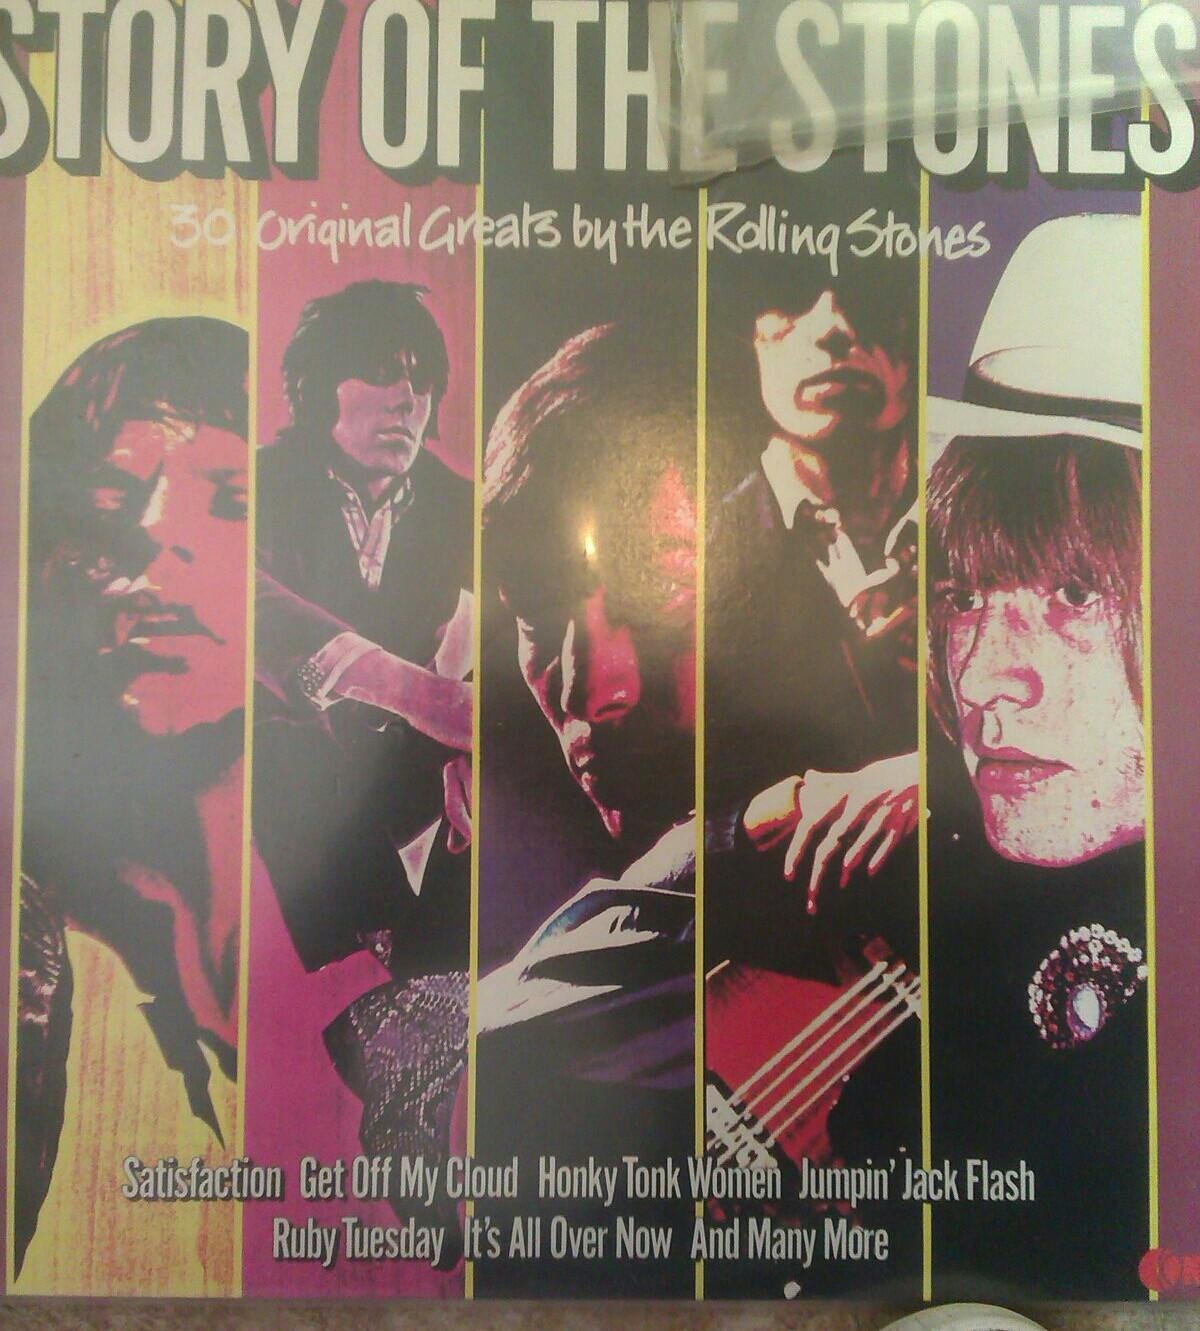 Rolling stones vinyls albums £7each £20 all in CV11 Nuneaton